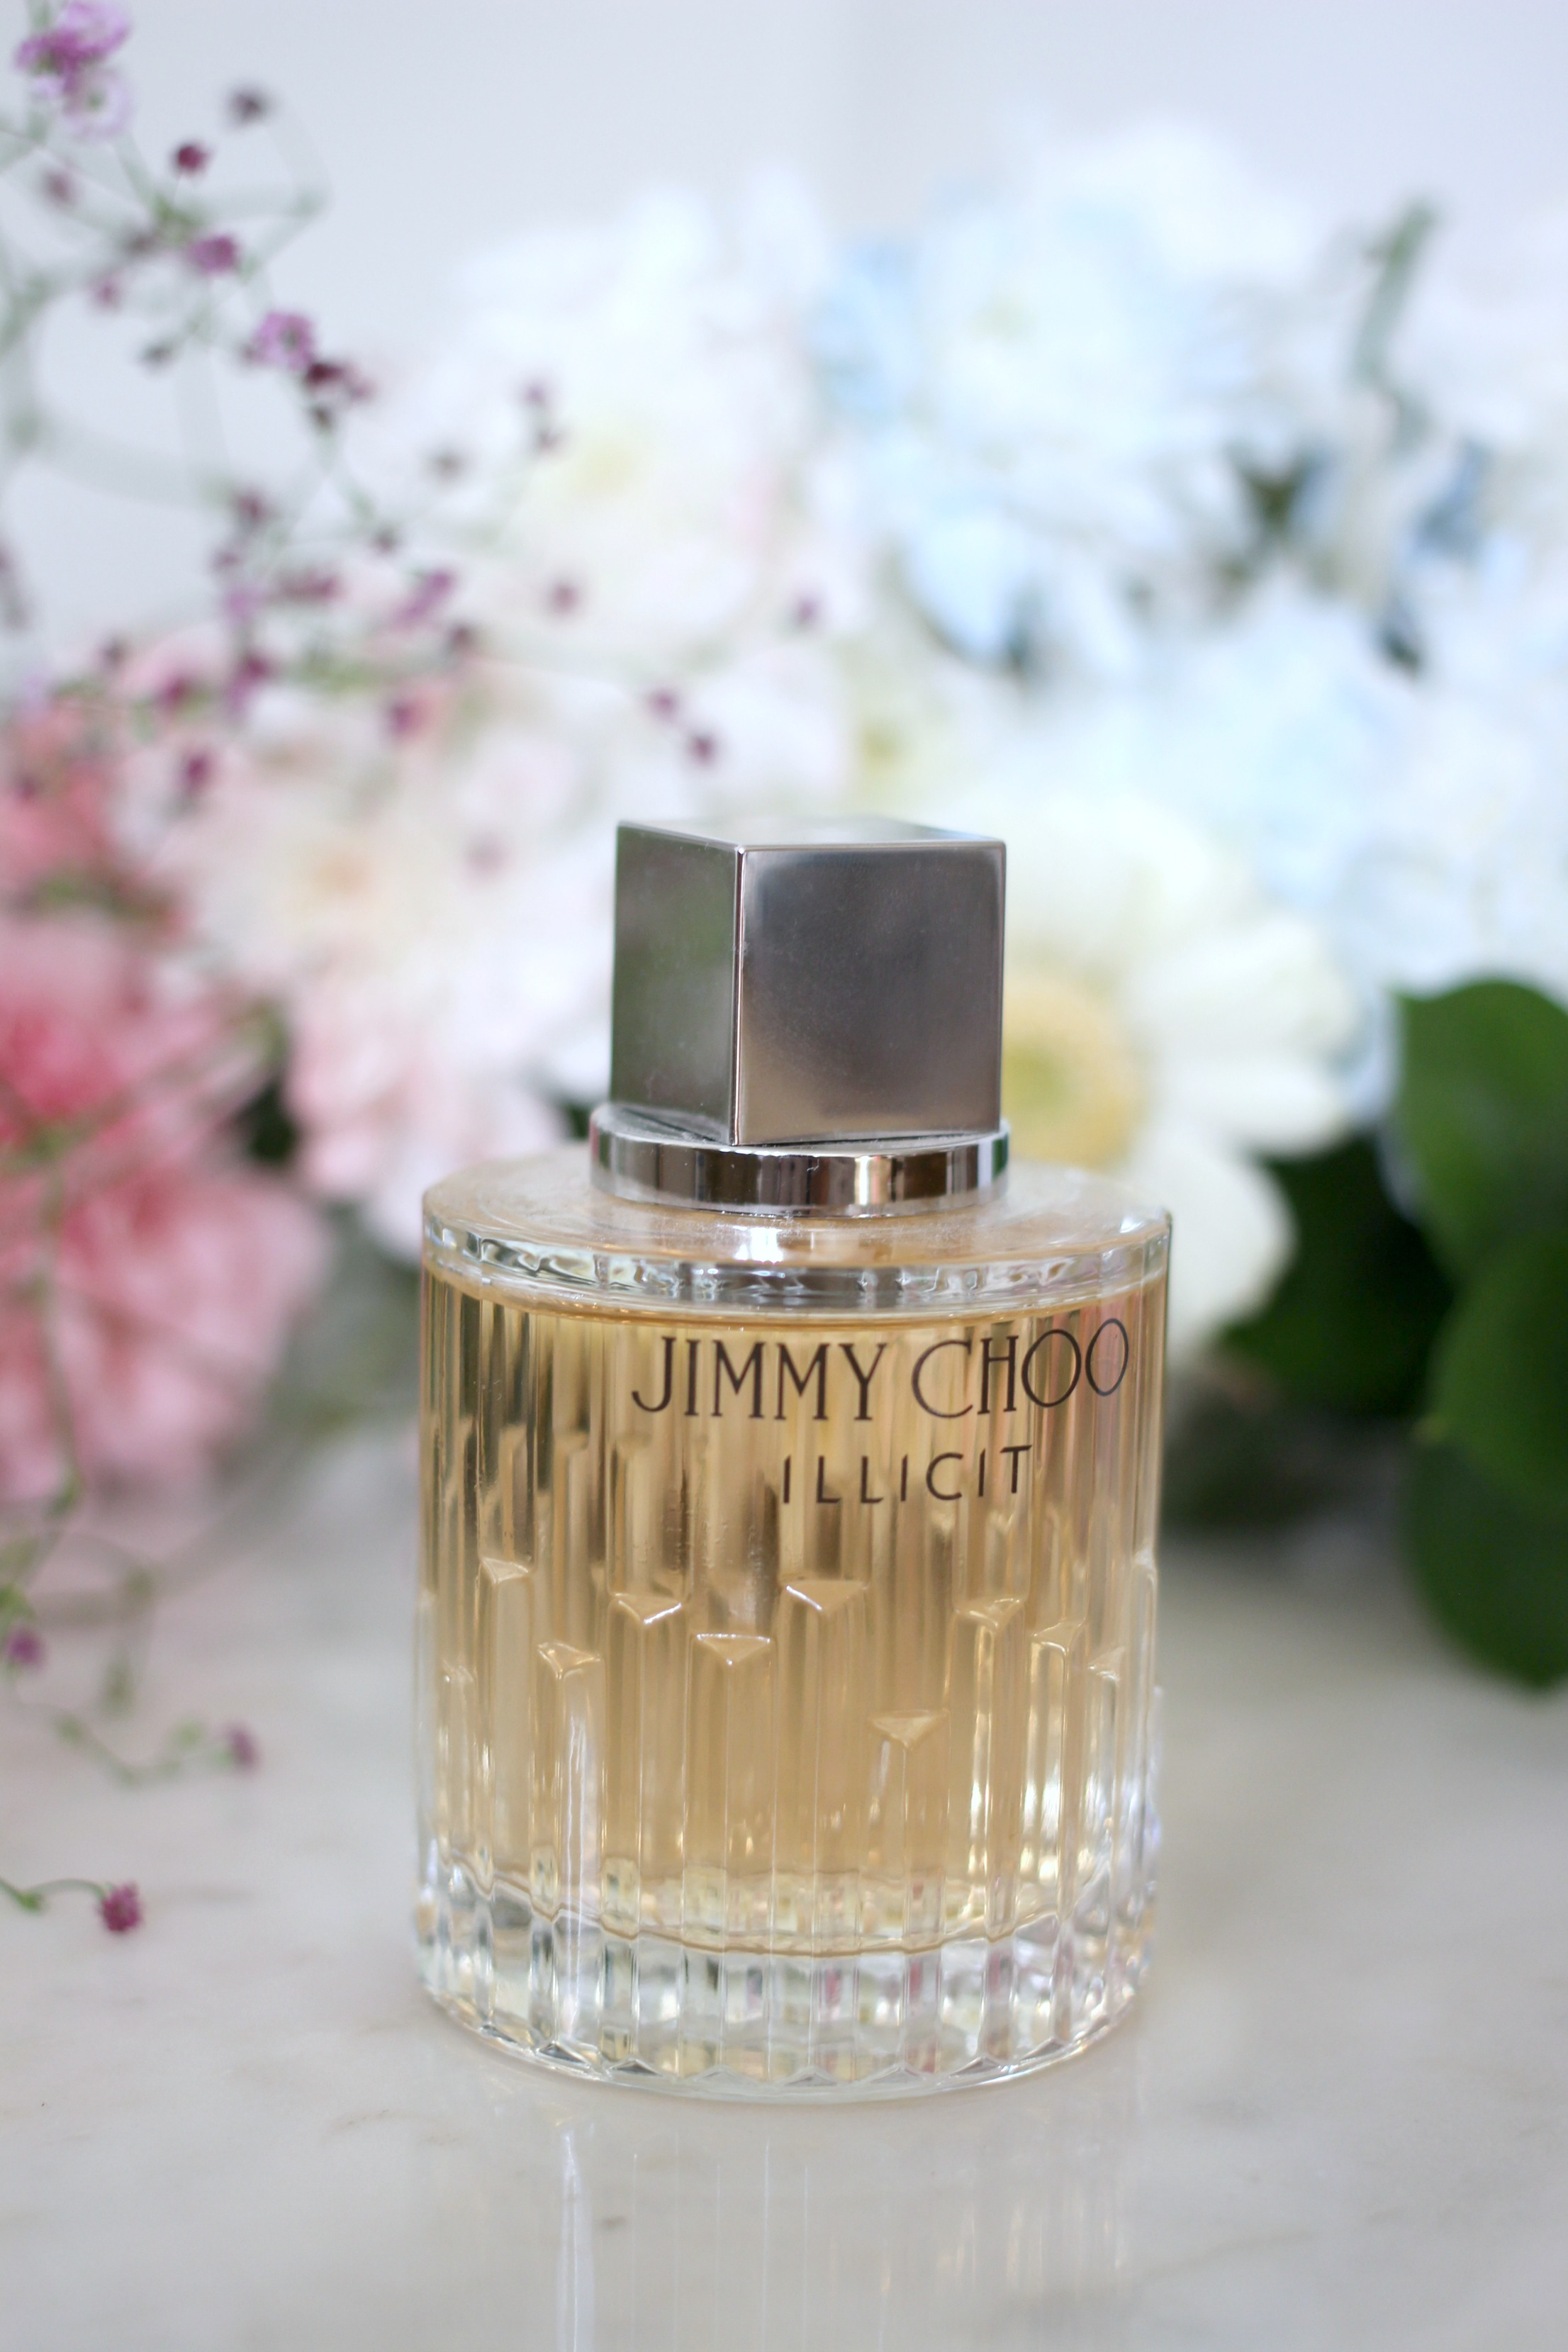 Finding your Fragrance Soulmate - Fashion Mumblr Perfume Jimmy Choo Illicit